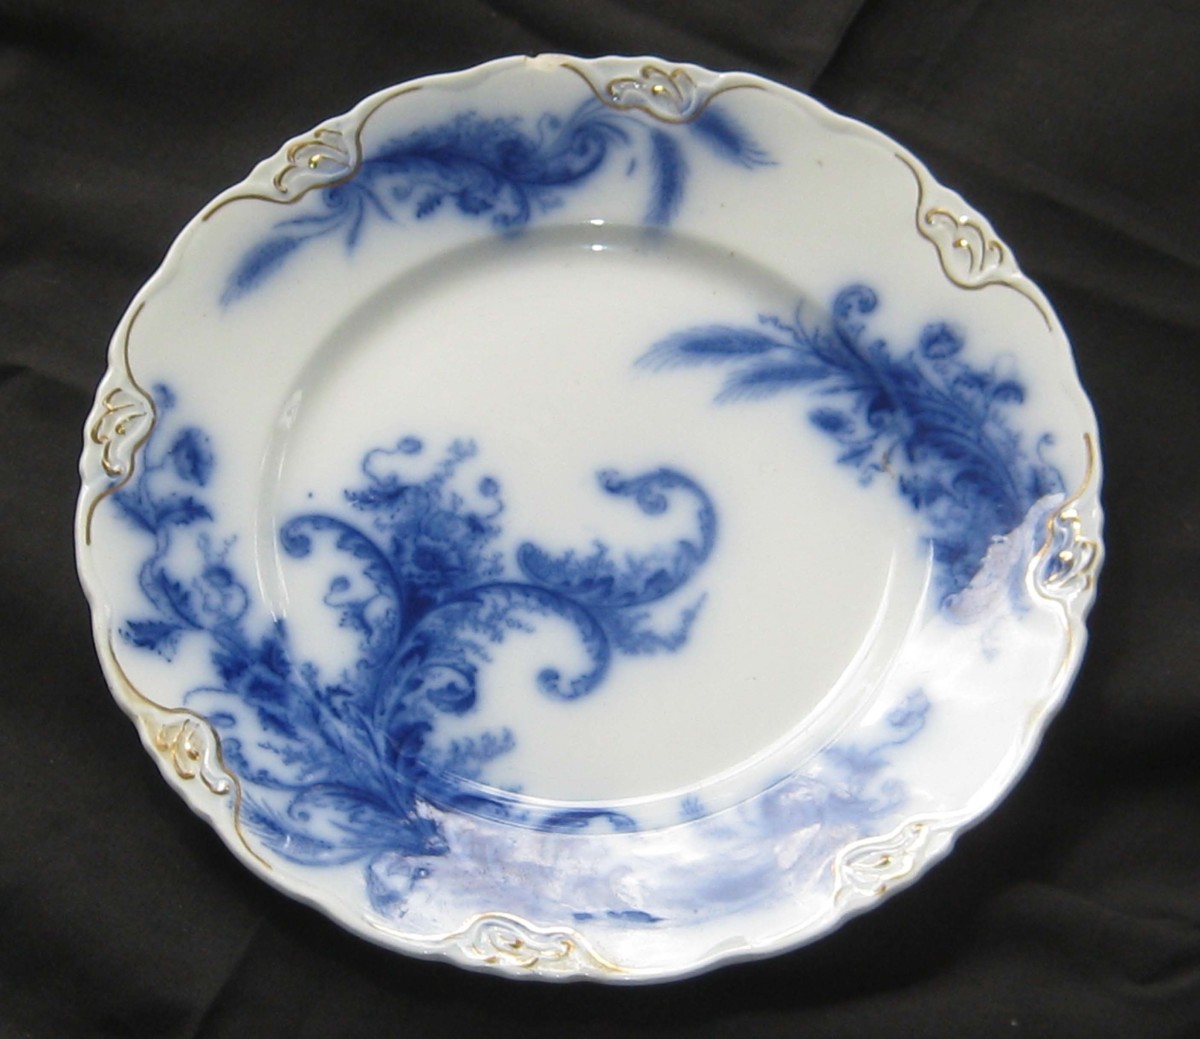 Flow Blue: Wentworth by Meakin, England, 1880